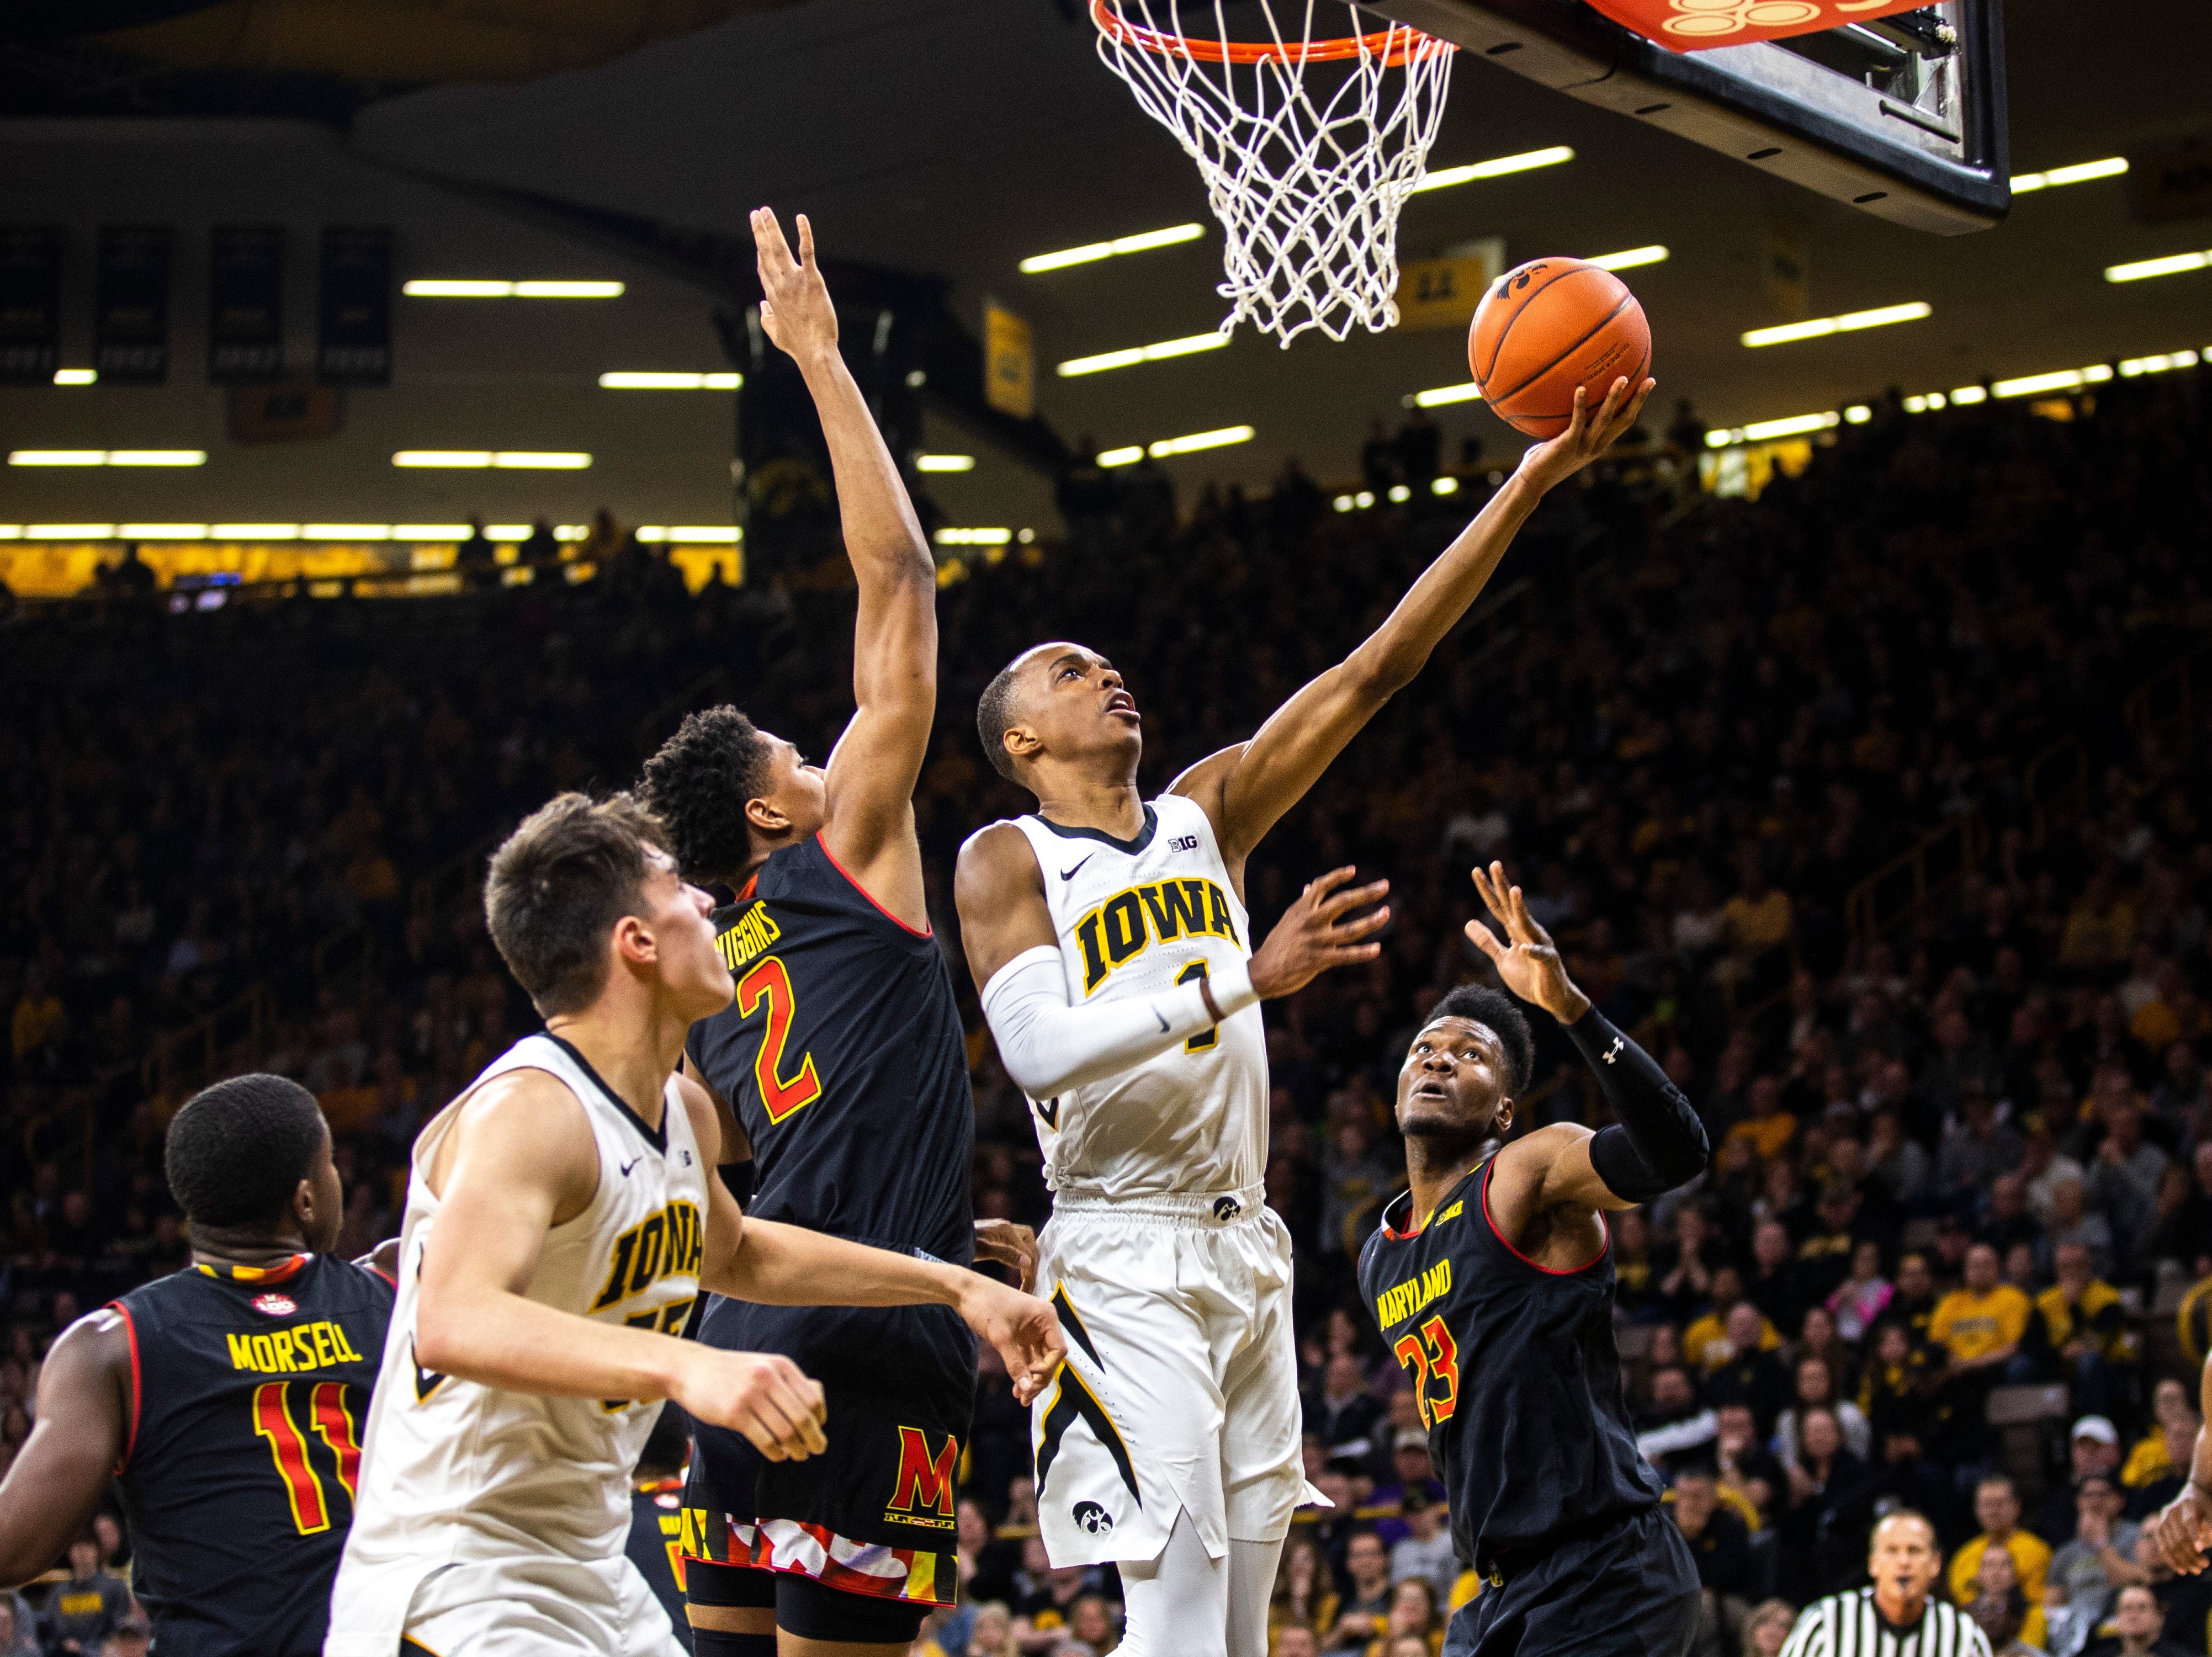 Iowa guard Maishe Dailey (1) makes a basket while Maryland guard Aaron Wiggins (2) defends during a NCAA Big Ten Conference men's basketball game on Tuesday, Feb. 19, 2019 at Carver-Hawkeye Arena in Iowa City, Iowa.